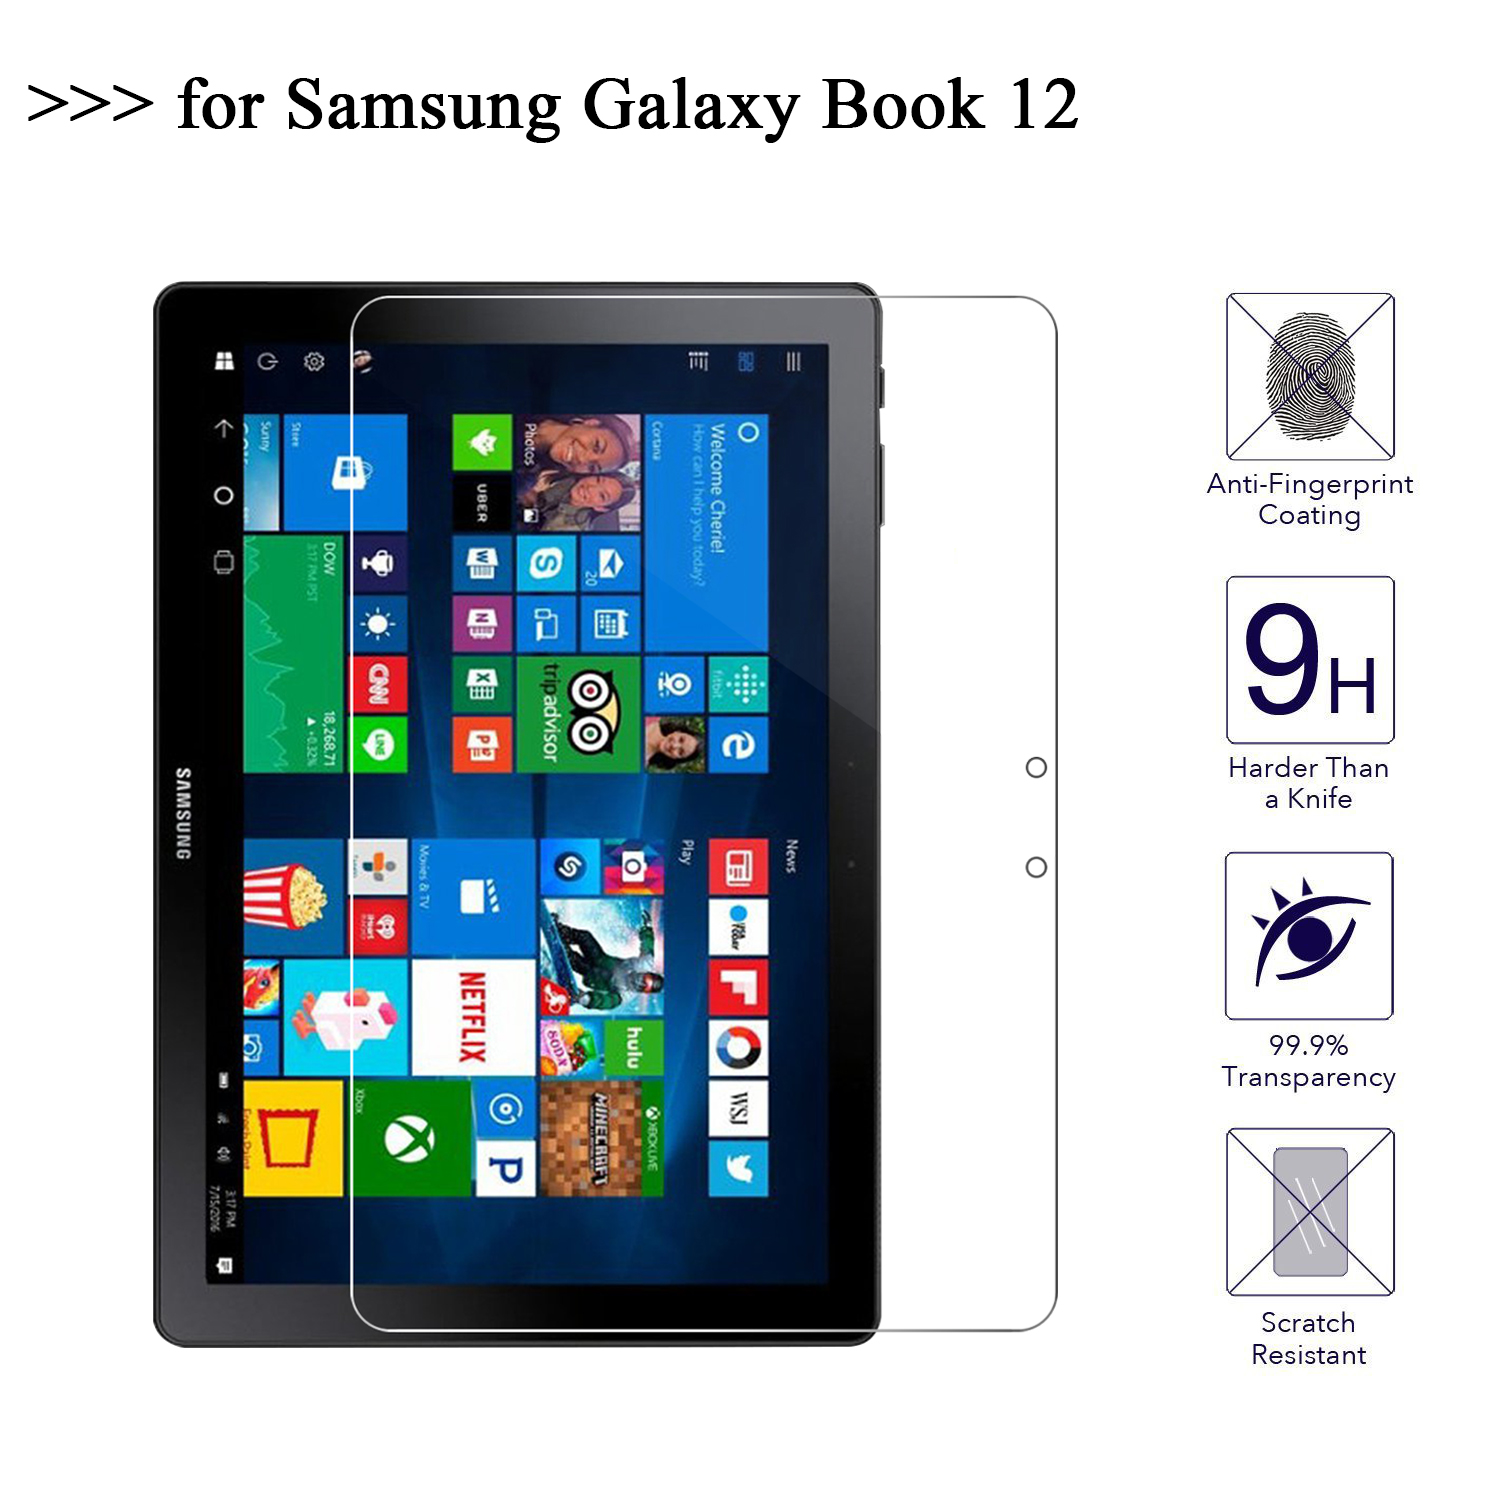 Screen Protector For Samsung Galaxy Book 12 inch Tempered Glass For Samsung Galaxy Book 12 Tablet Protective FilmScreen Protector For Samsung Galaxy Book 12 inch Tempered Glass For Samsung Galaxy Book 12 Tablet Protective Film